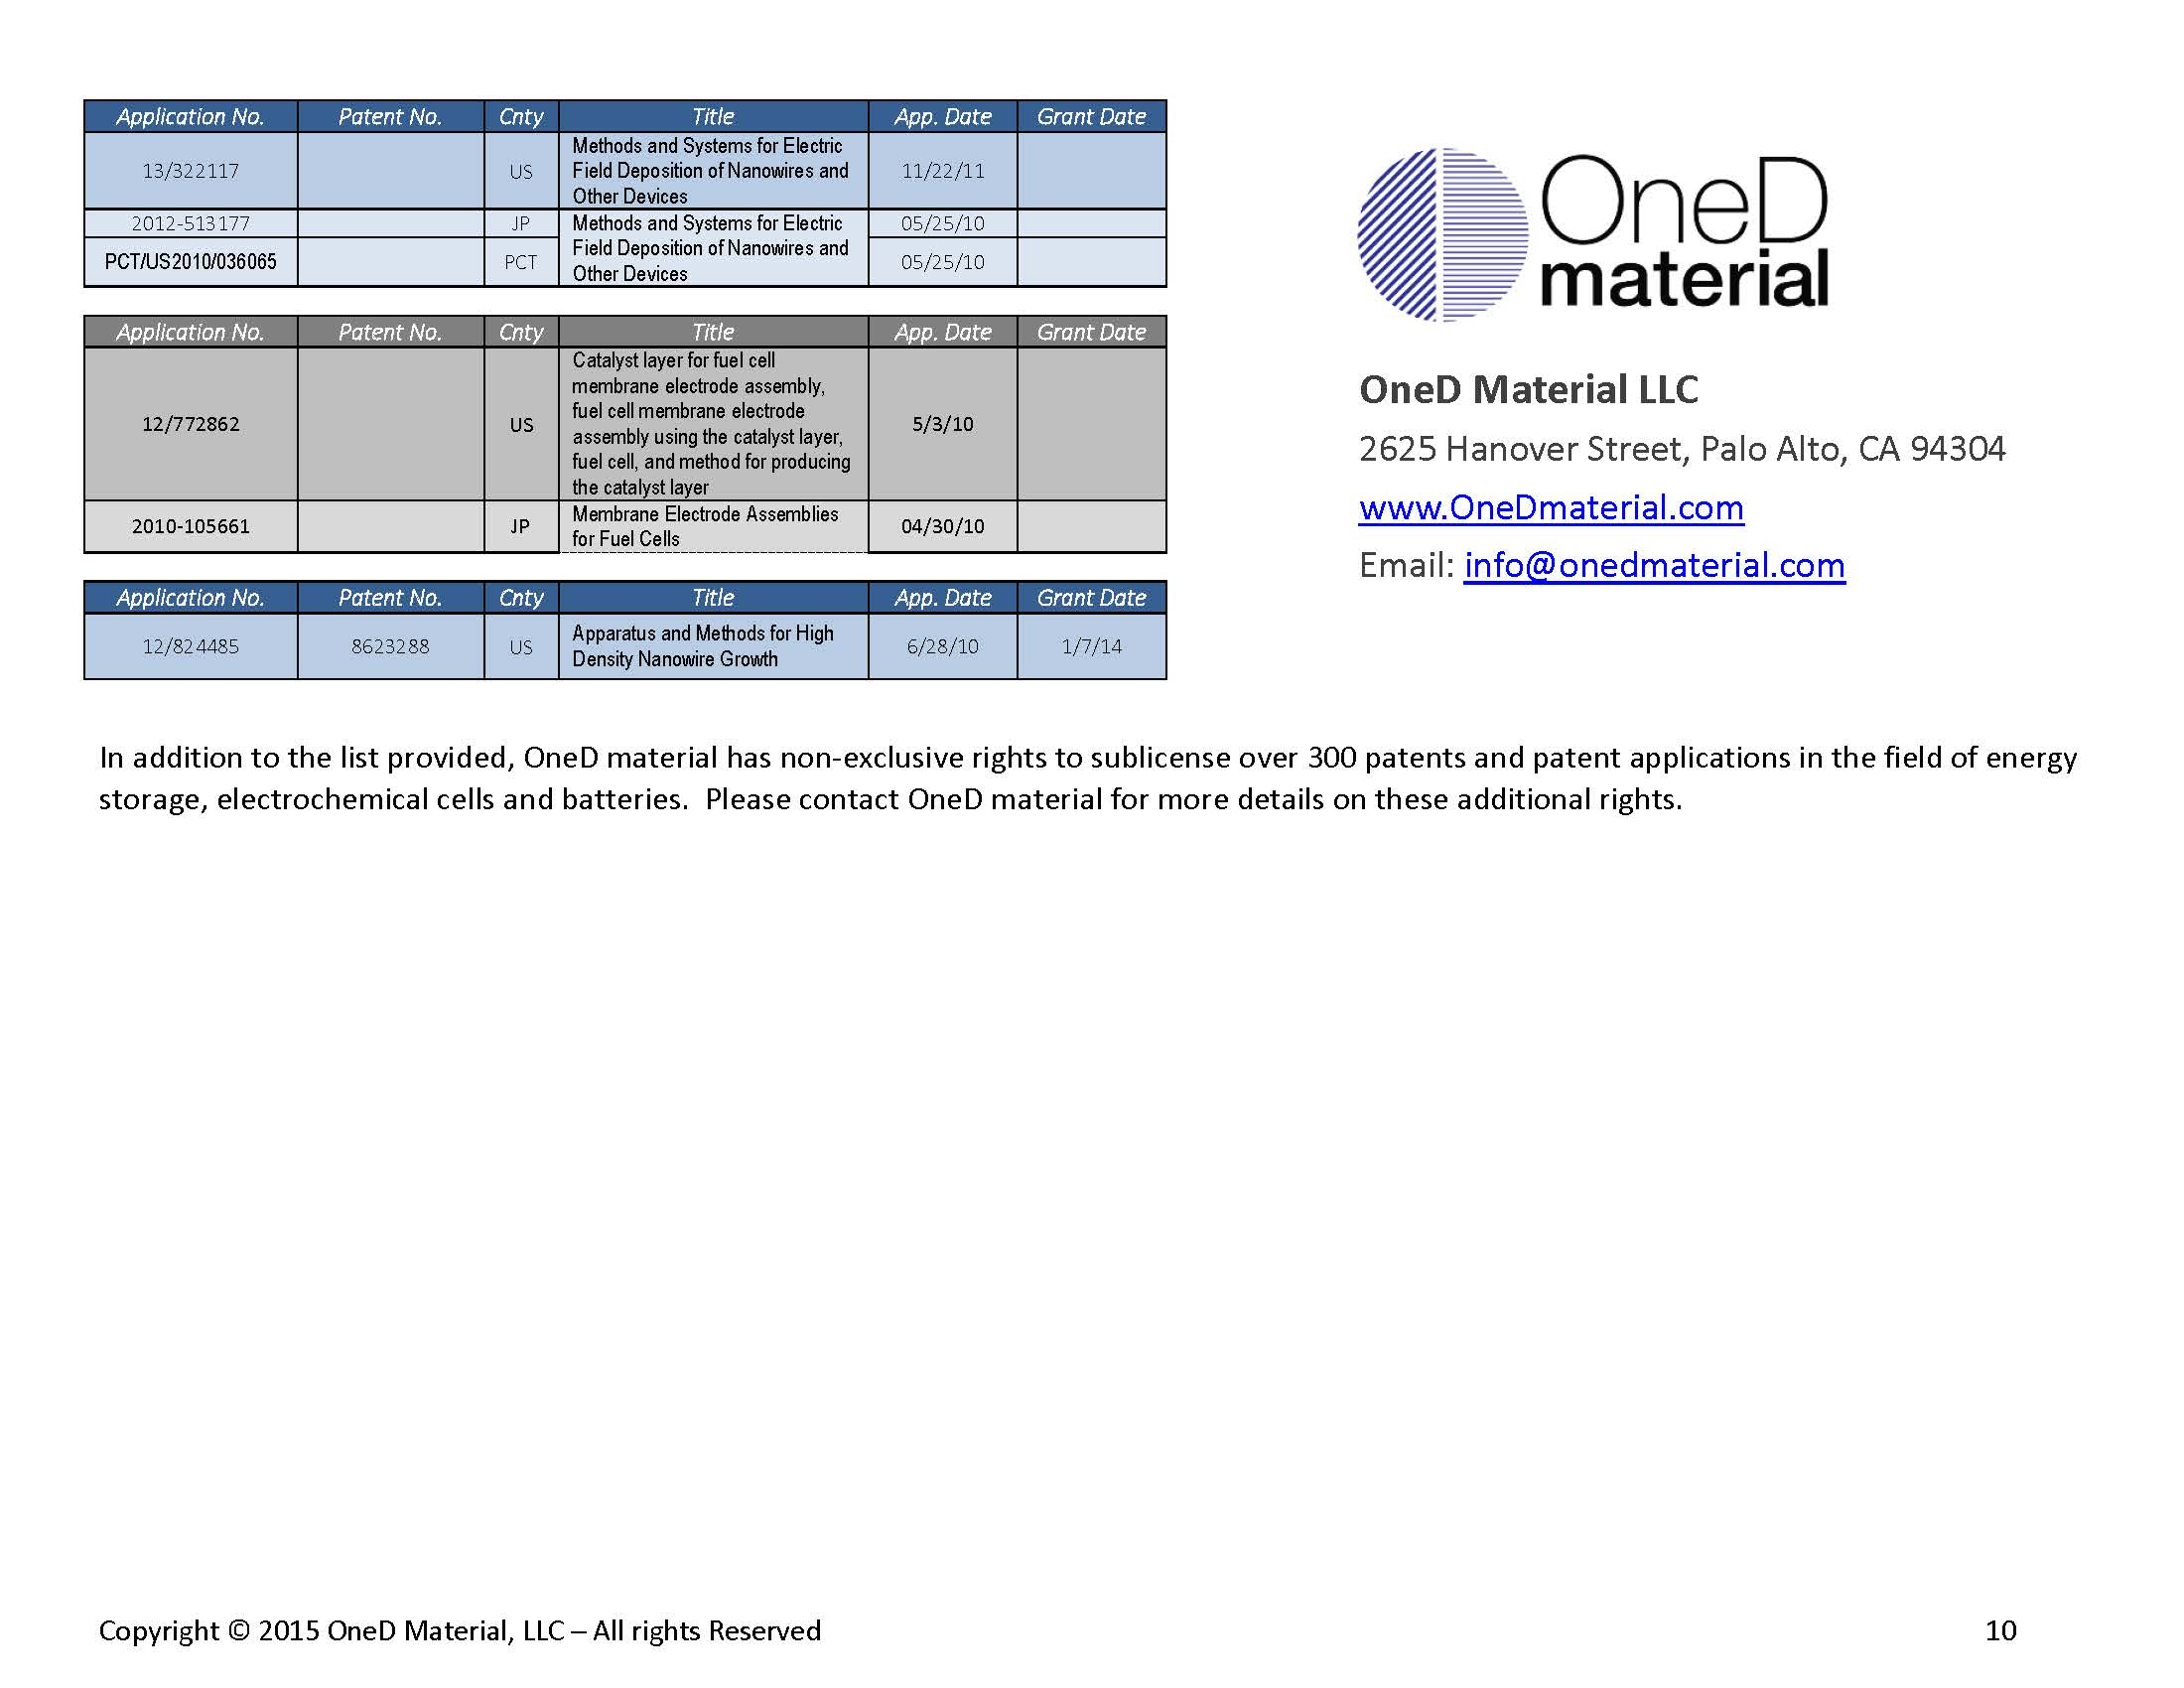 OneD Material-IP Portfolio-Jan 2015_Page_10.jpg